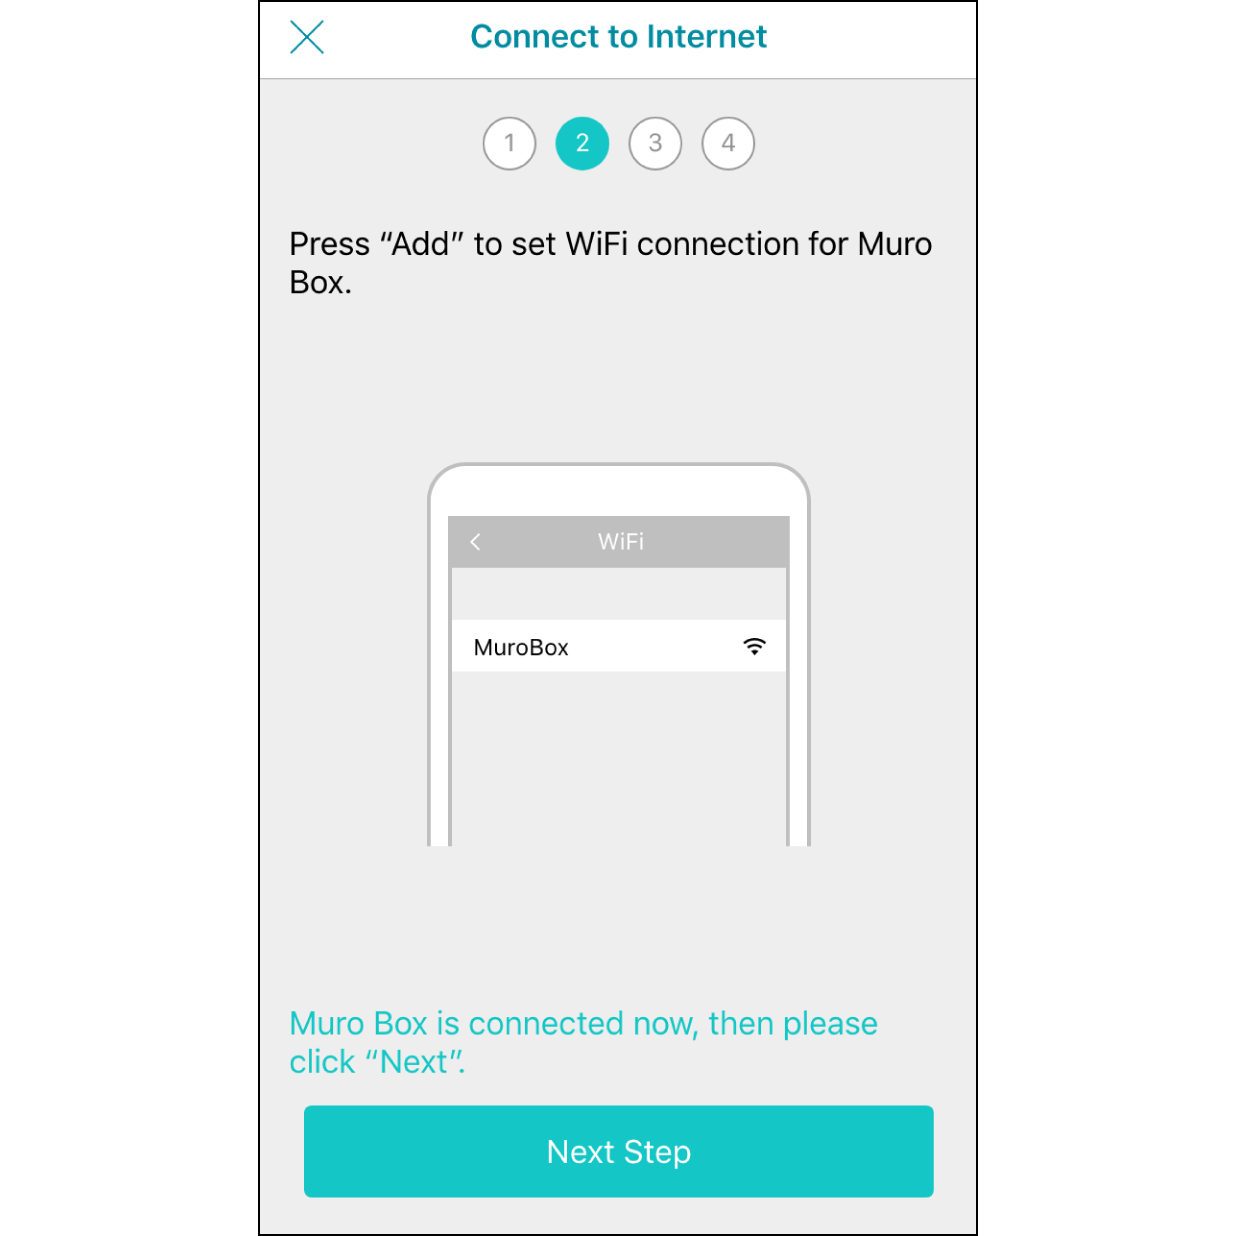 """5. Connected to Muro Box Wi-FiAfter finishing the connection, it will indicate """"Connected to Muro Box"""" soon, then hit """"Next""""."""